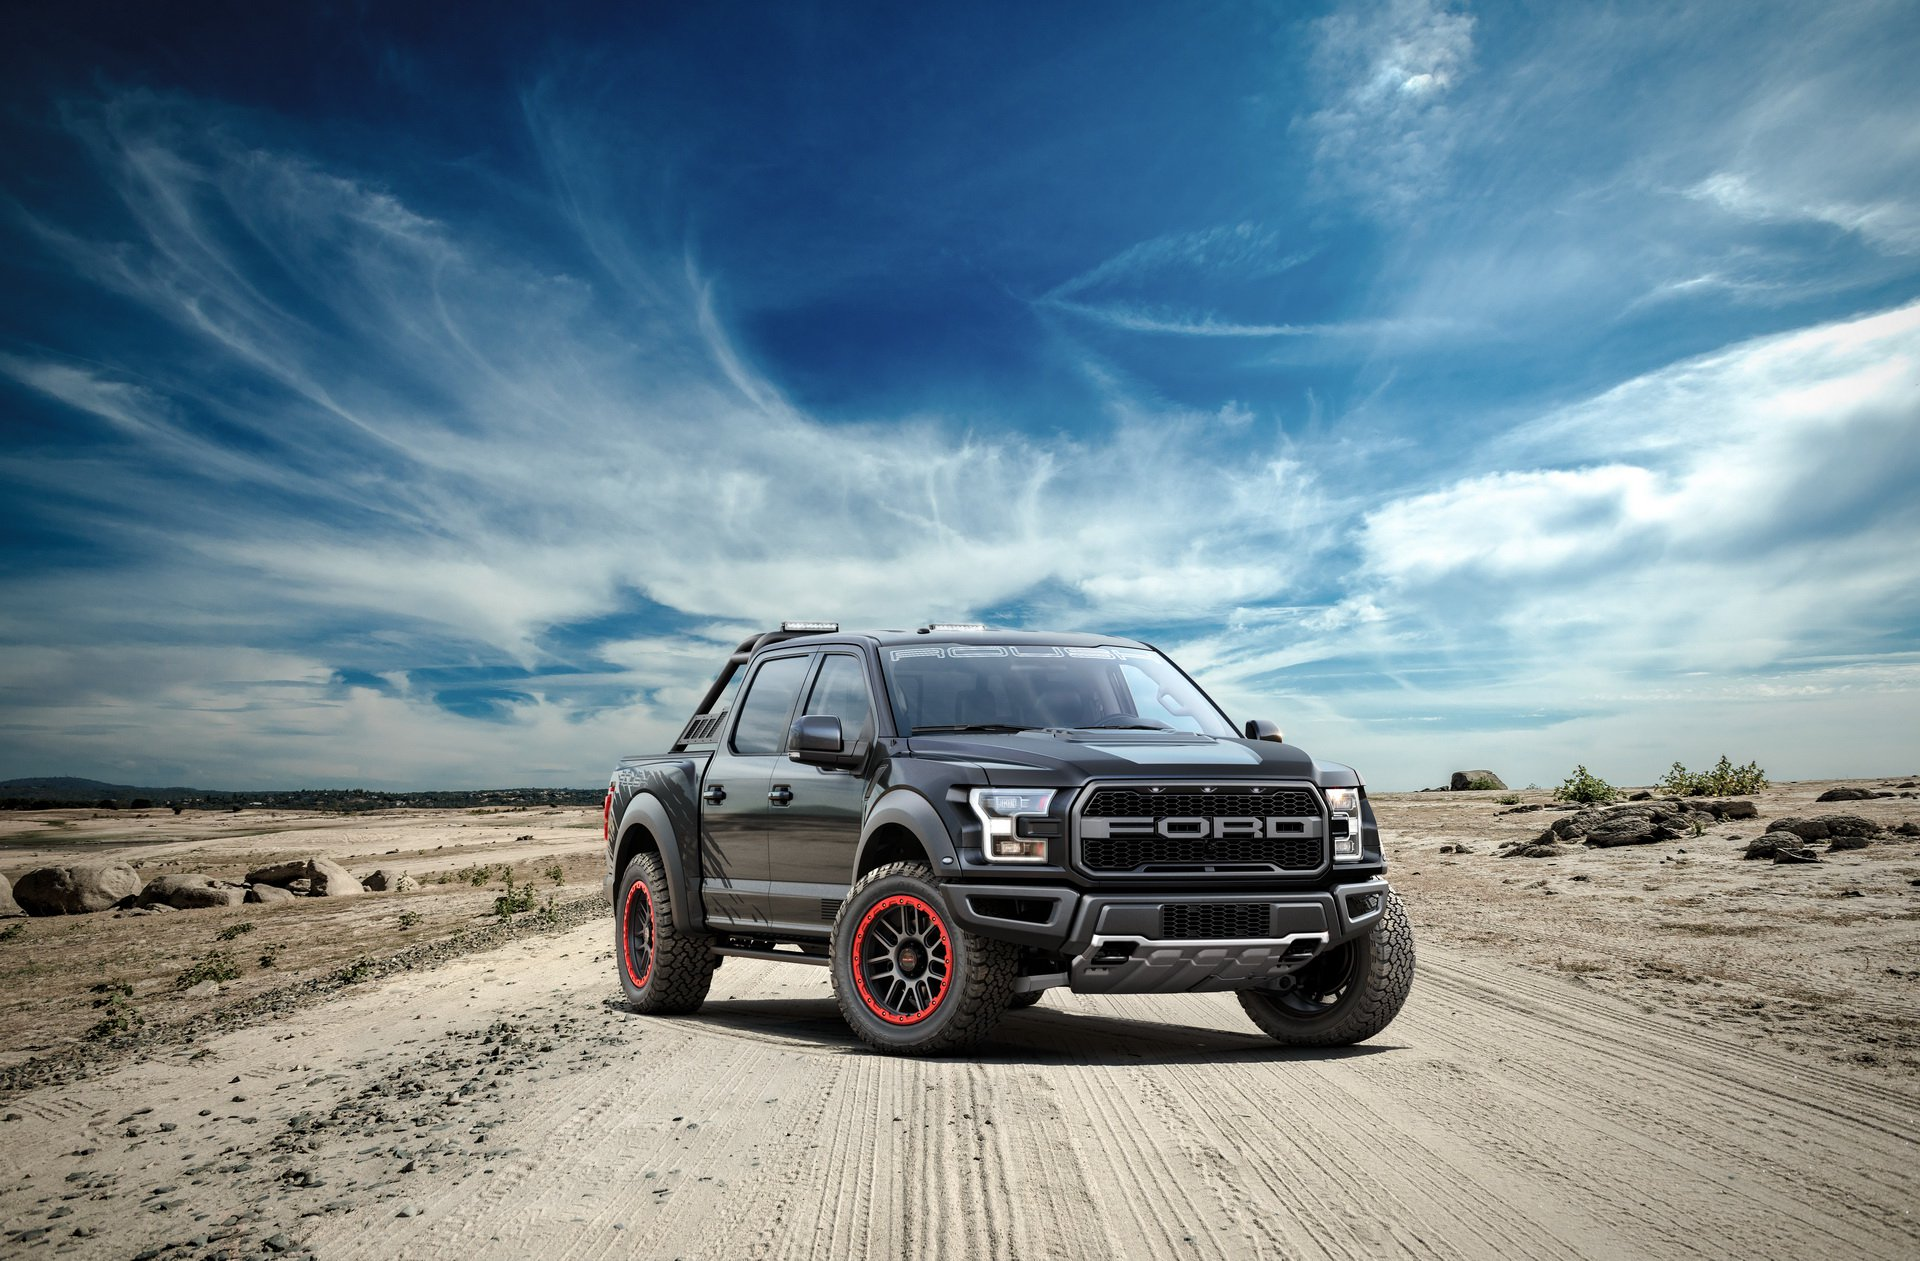 2019 Roush Raptor Means Off-Road Business - autoevolution